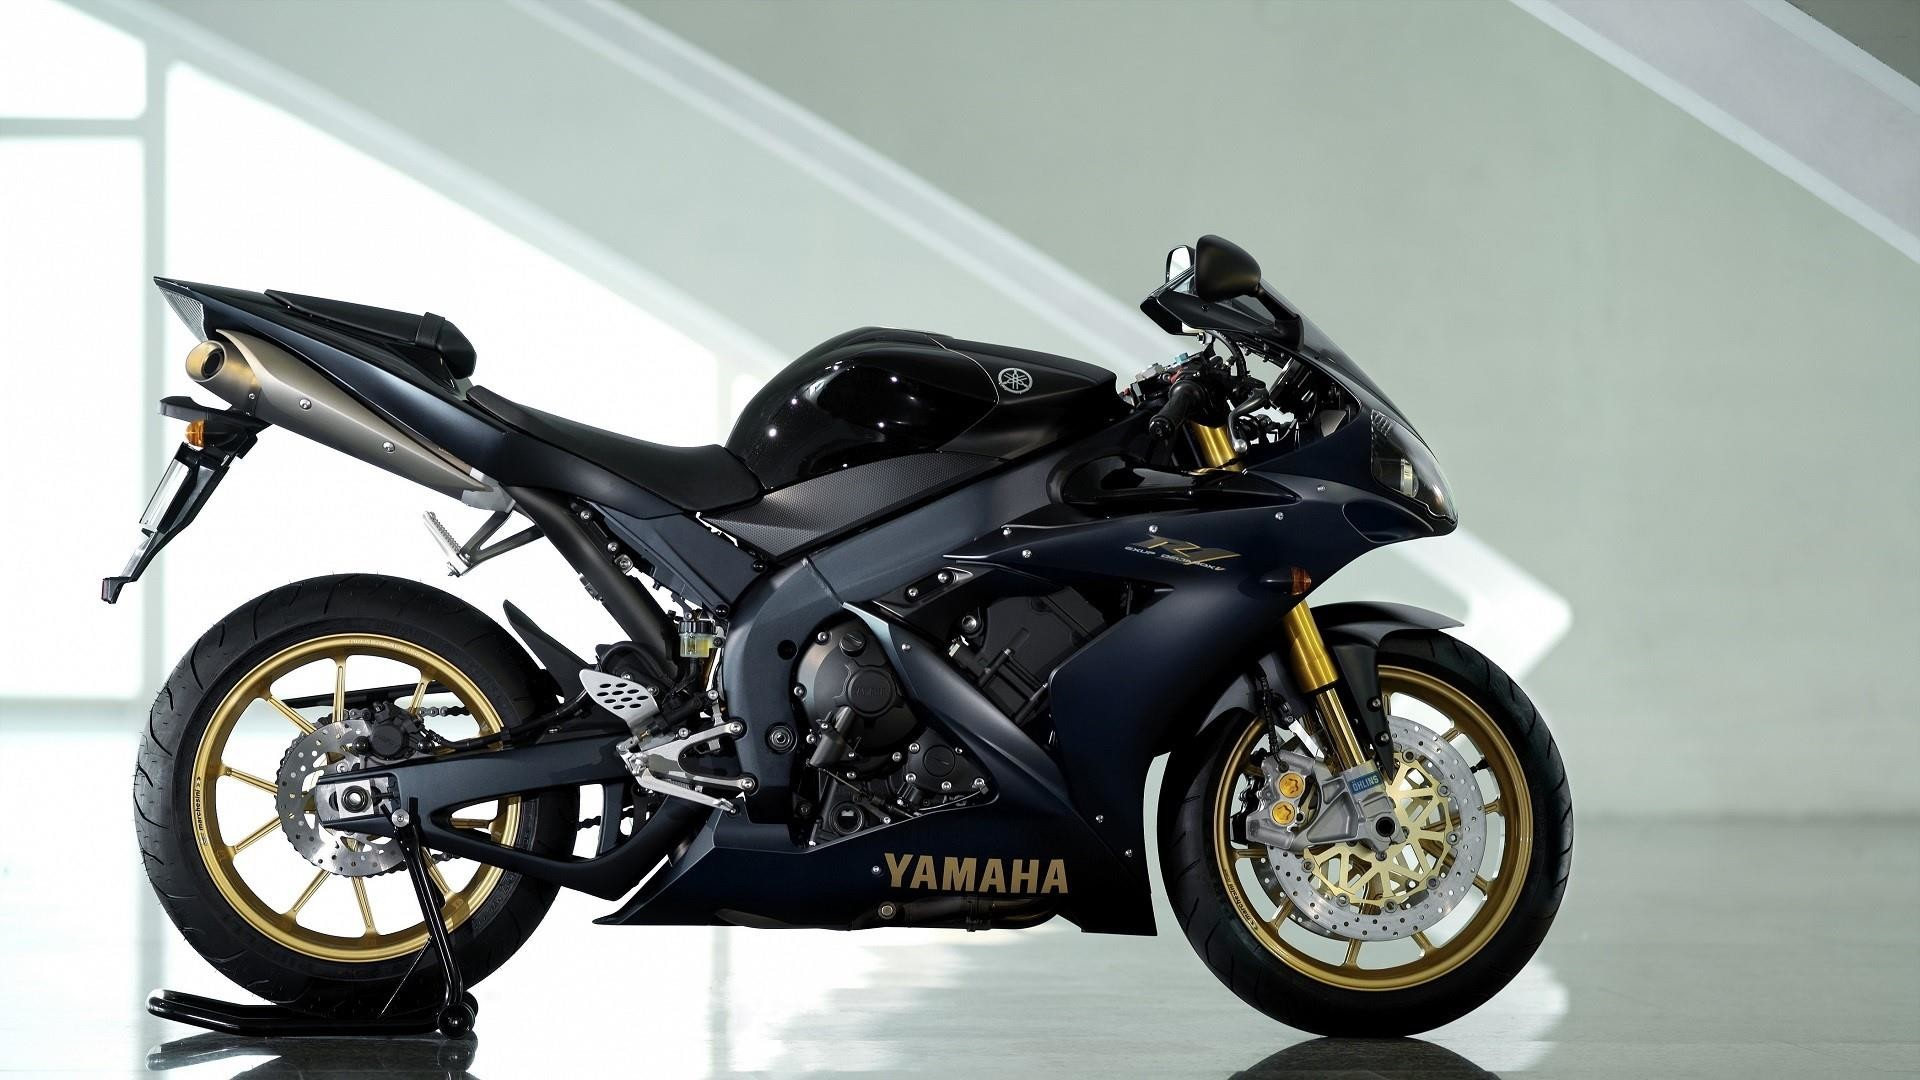 Res: 1920x1080, Yamaha YZF-R1 Wallpaper | Wallpaper Studio 10 | Tens of thousands HD and  UltraHD wallpapers for Android, Windows and Xbox